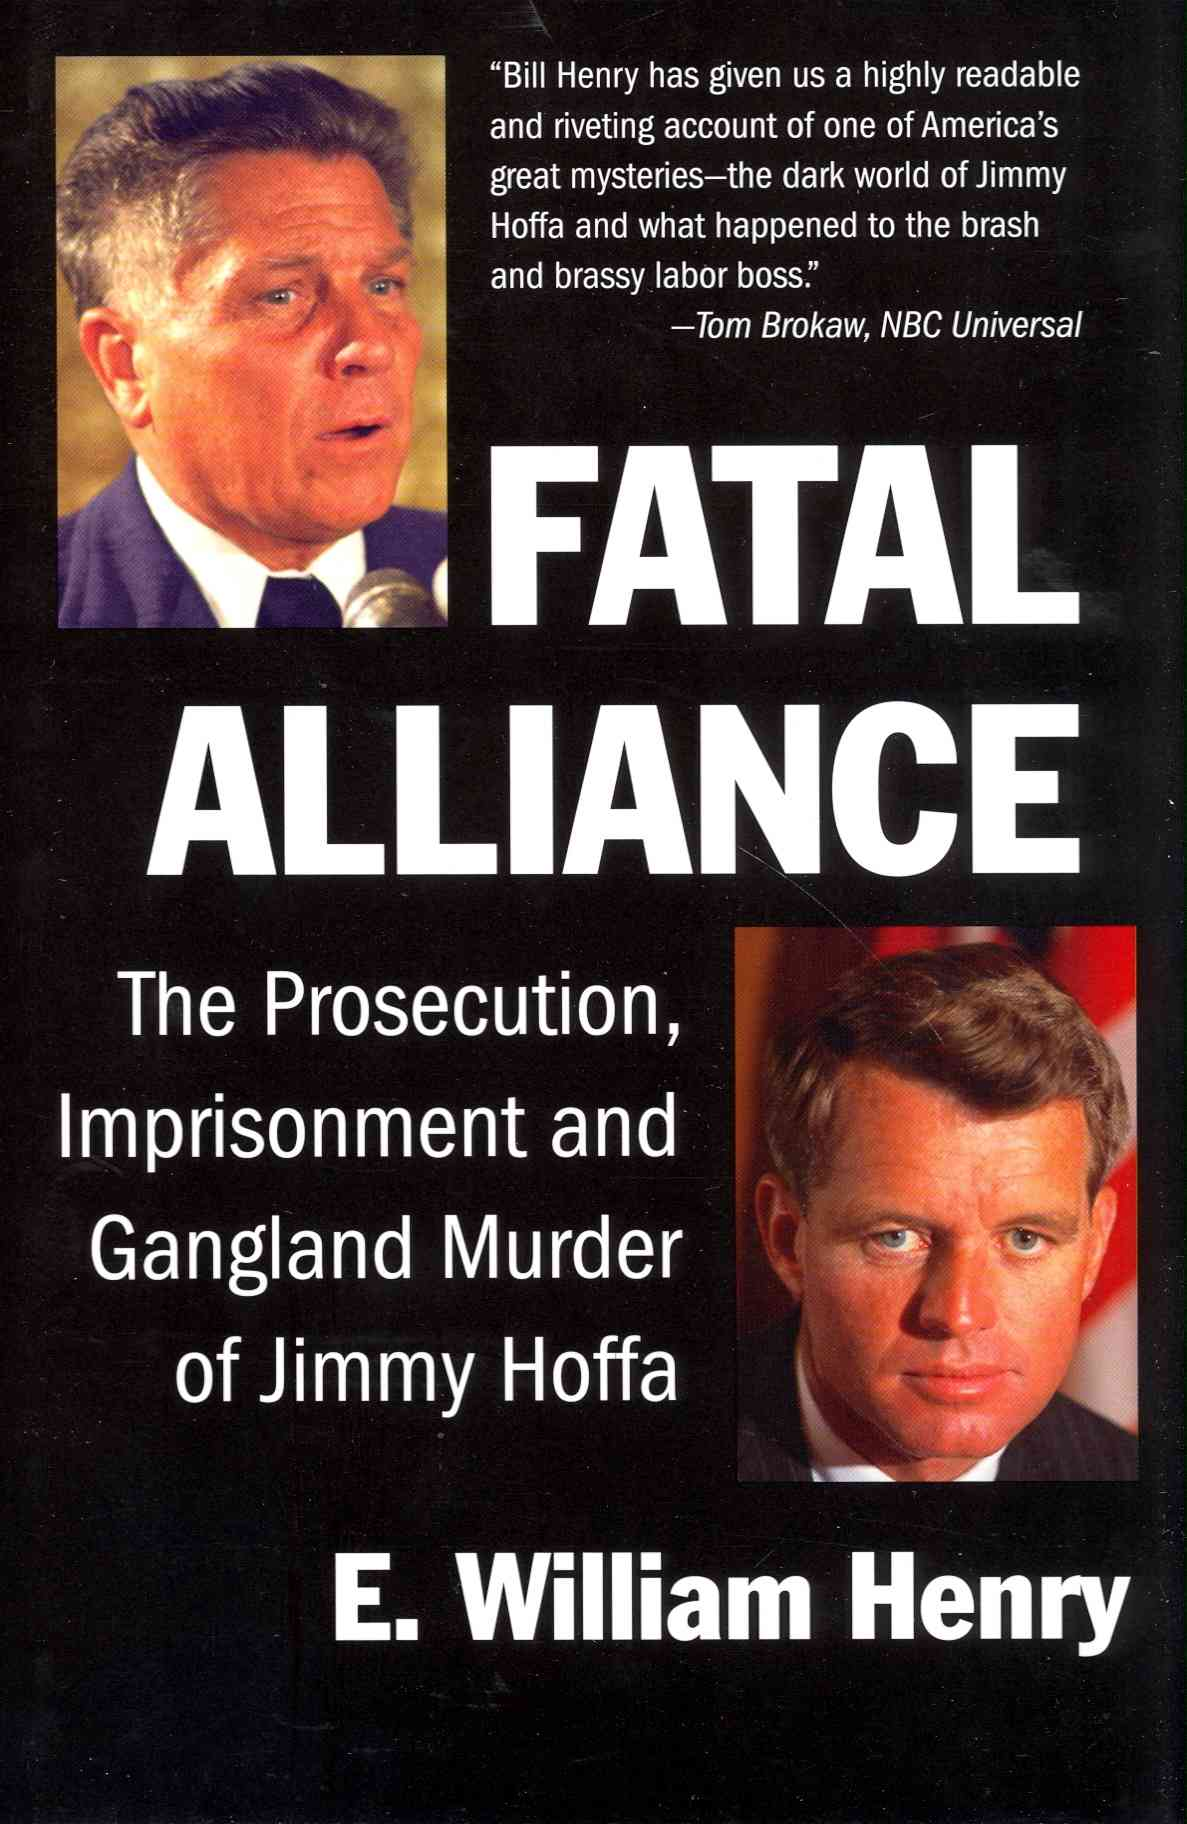 Fatal Alliance: The Prosecution, Imprisonment and Gangland Murder of Jimmy Hoffa (Hardcover)